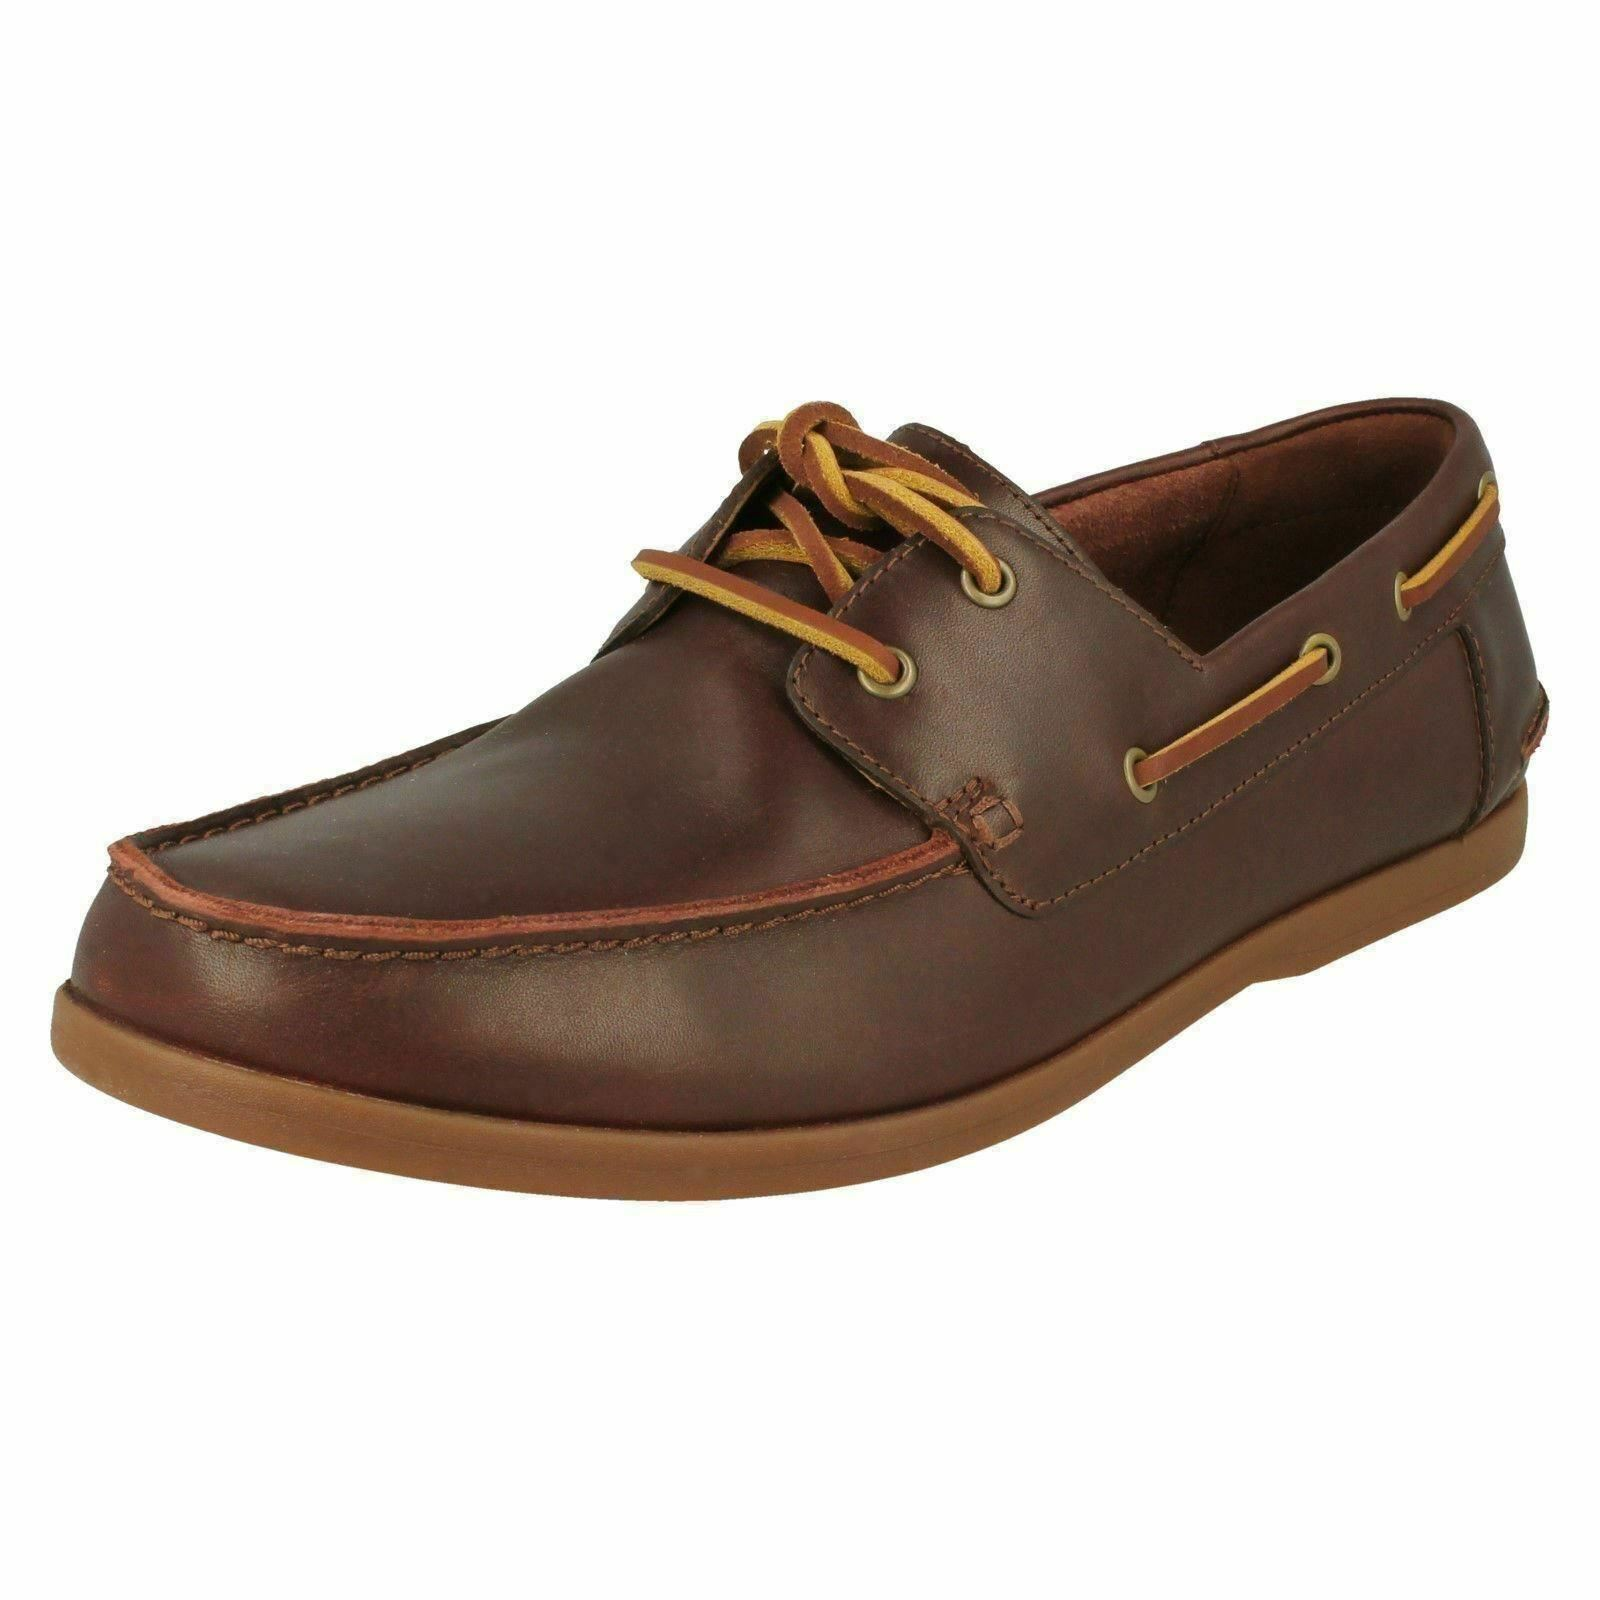 Mens Clarks 'Pickwell Sail' Leather Lace Up Boat schuhe - G Fit